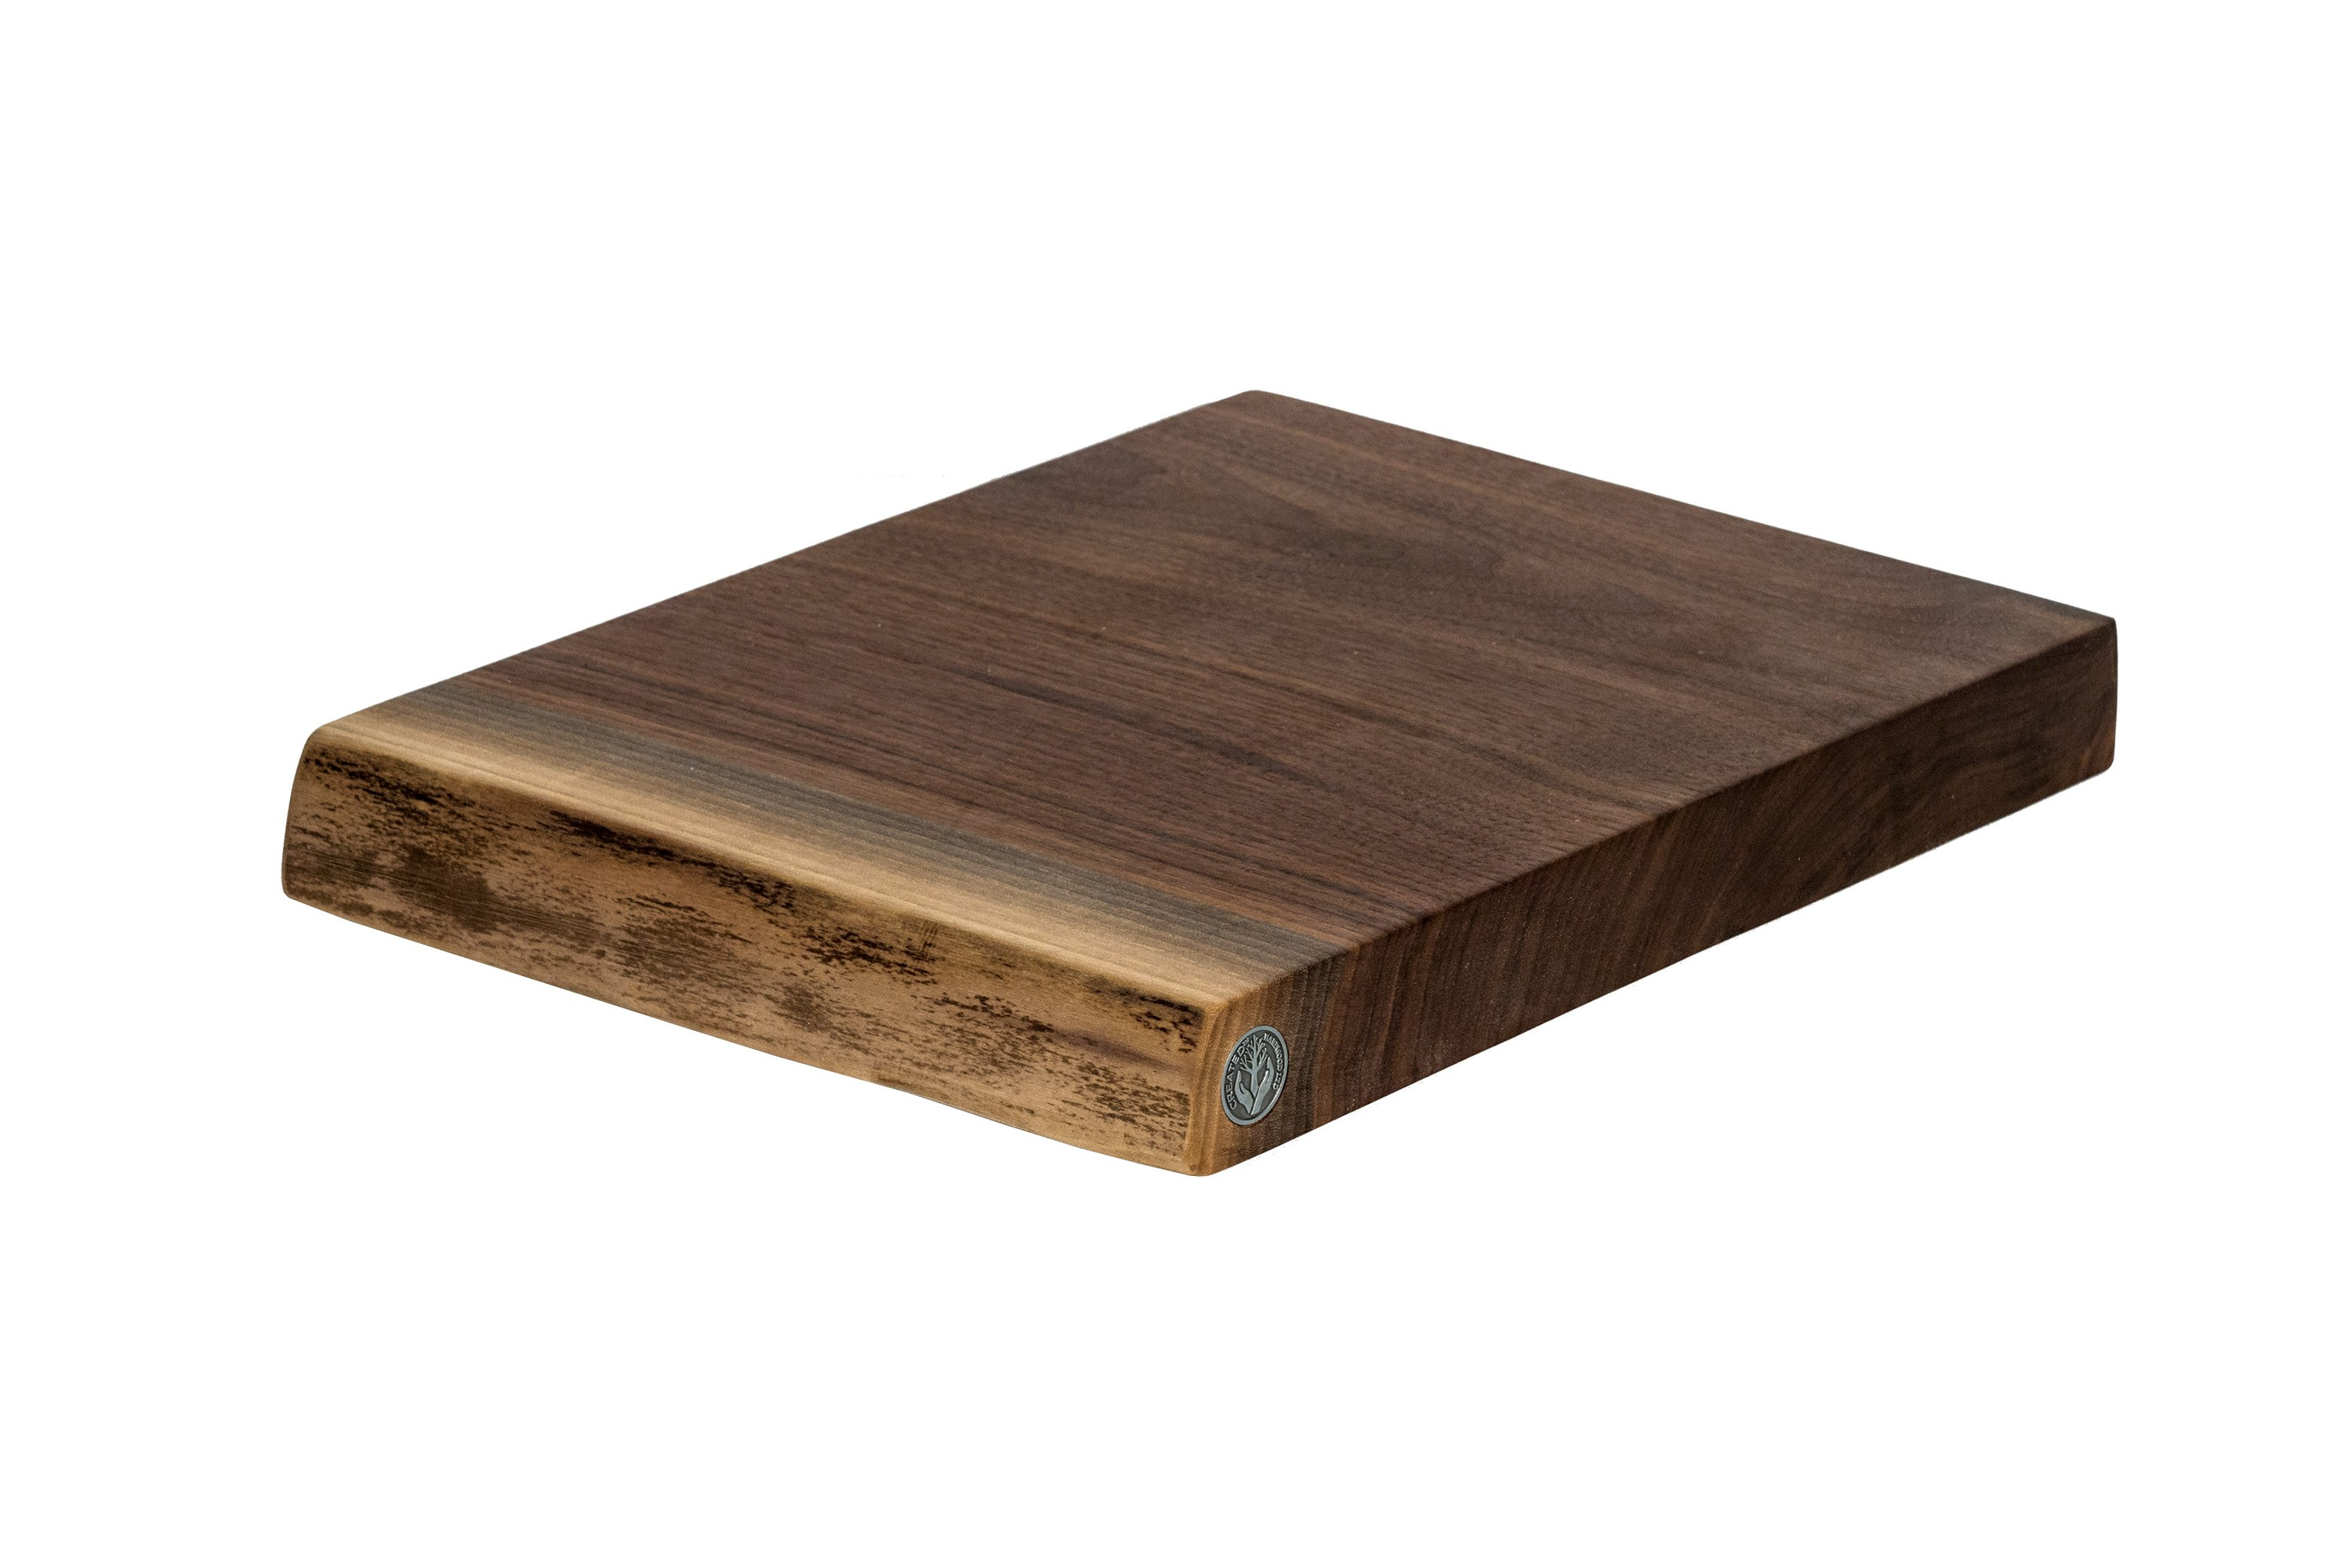 Live Edge Walnut Cutting Board #026 - 13